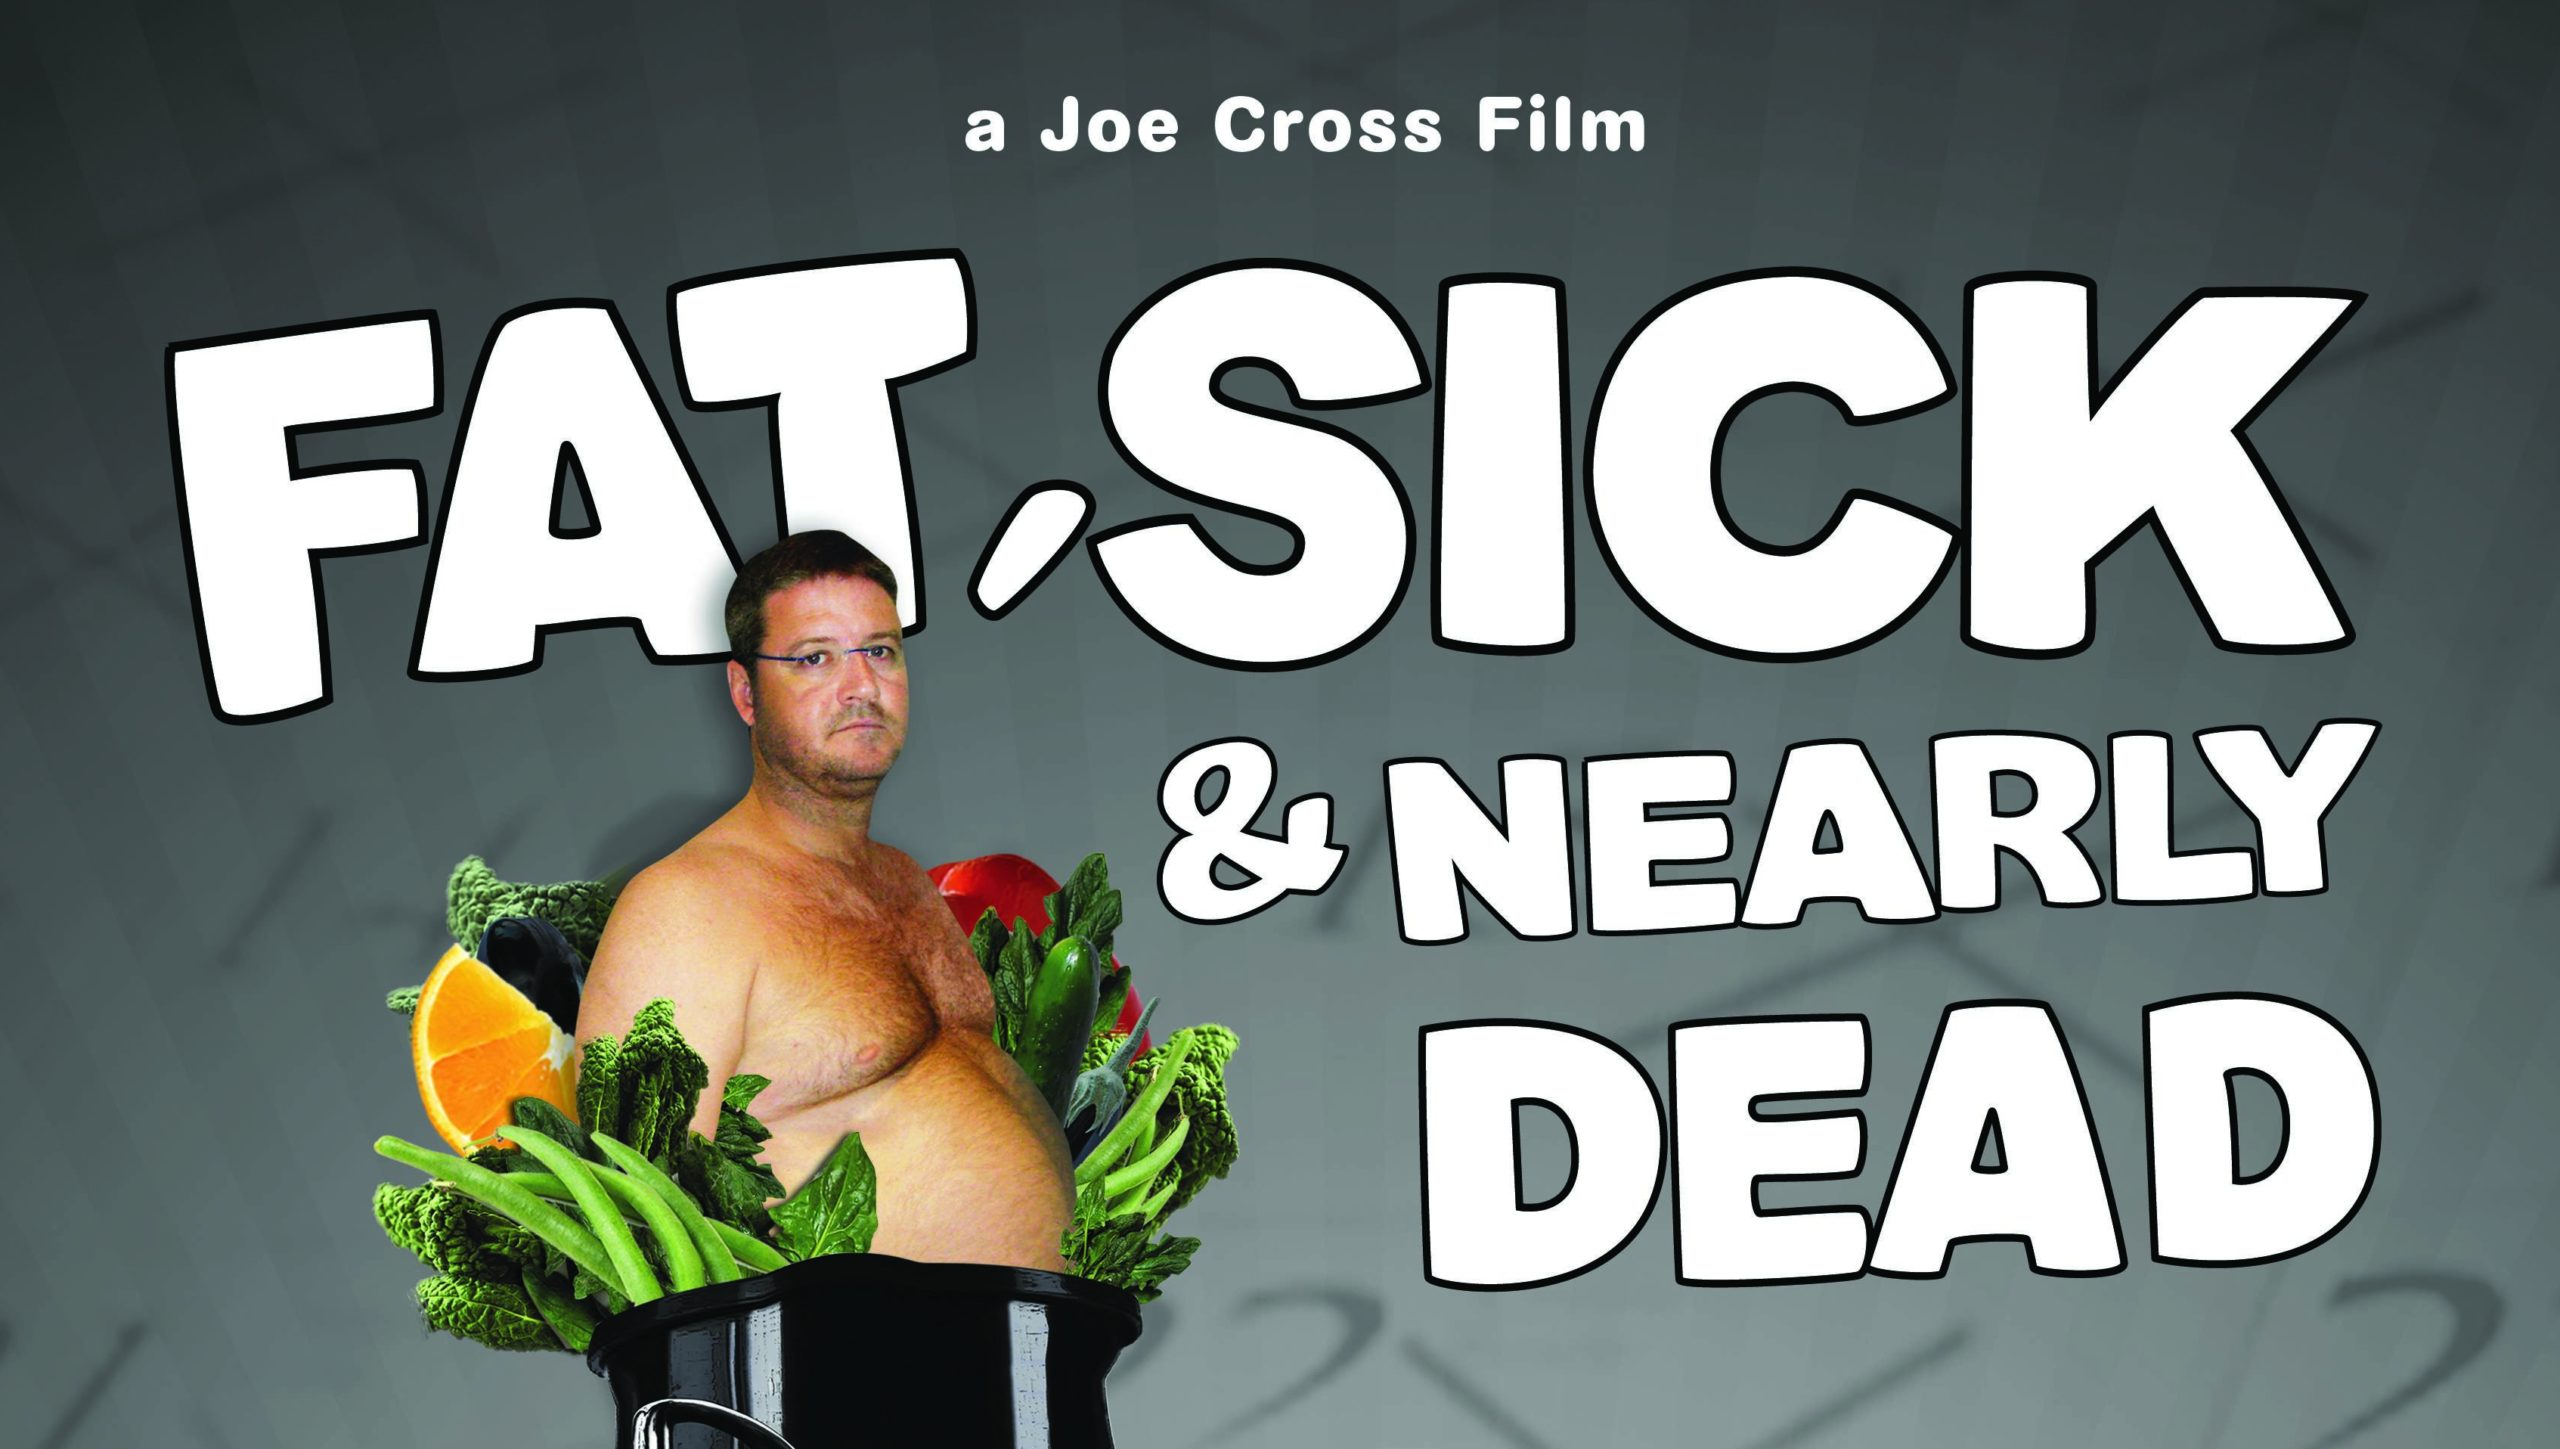 The movie poster for the vegan documentary fat sick and nearly dead showing a fat man inside a vegetable juicer